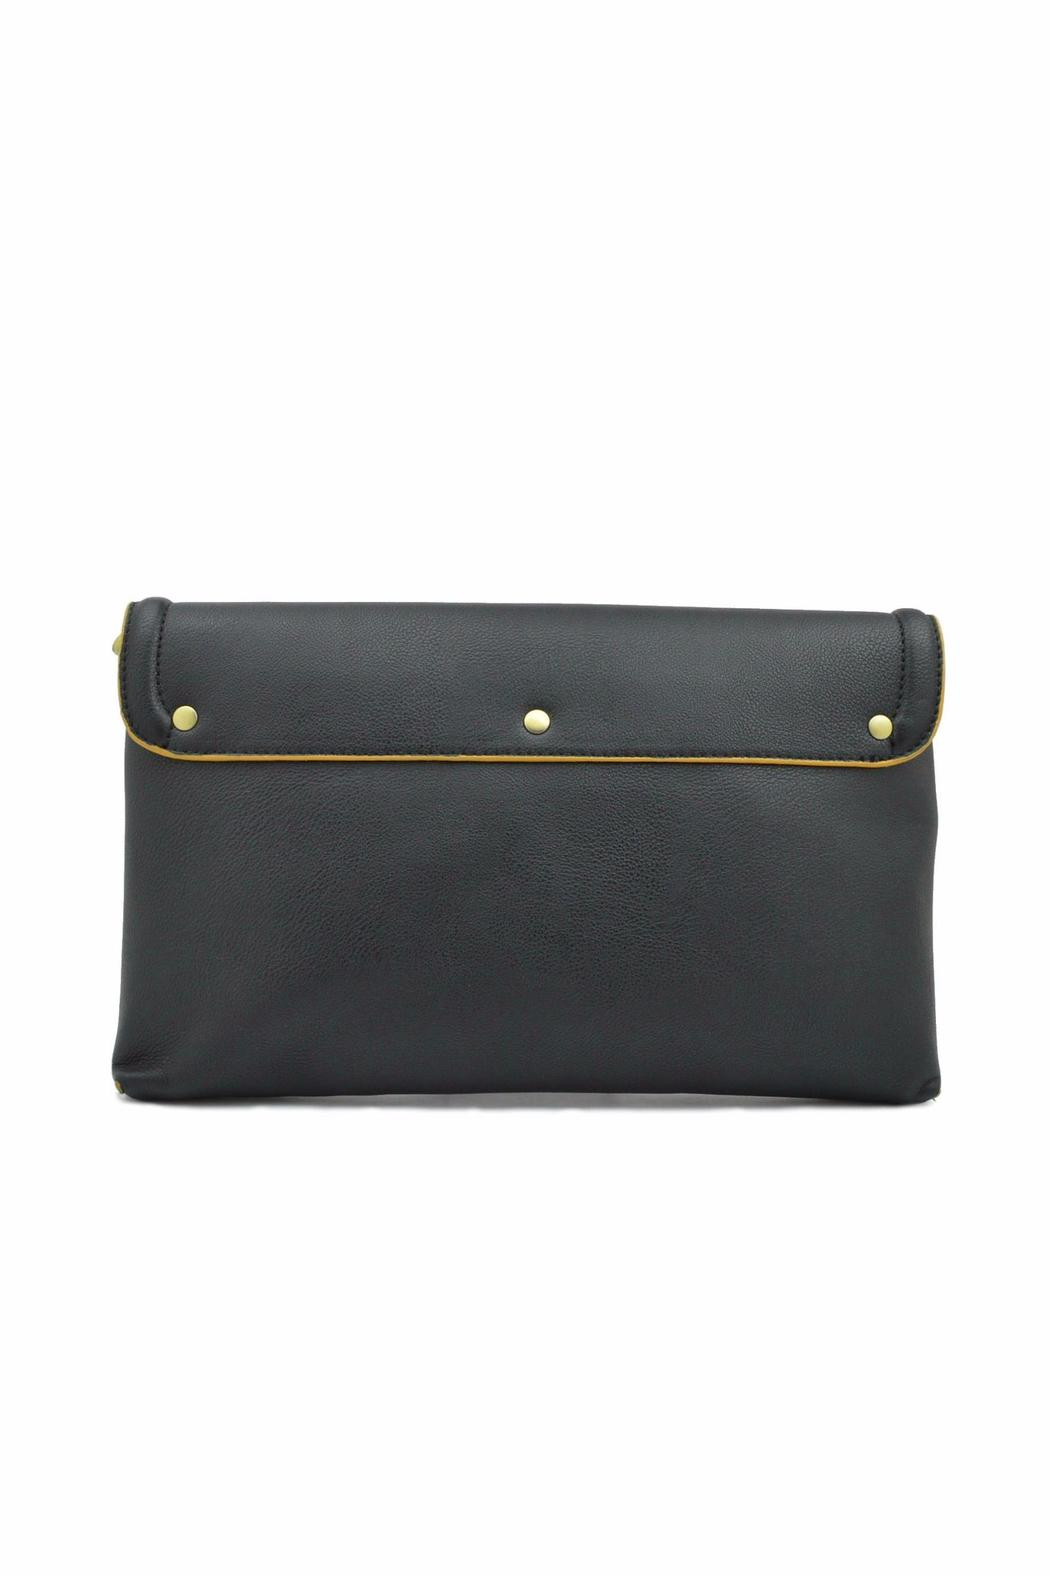 Steve Madden Chain Clutch Crossbody - Back Cropped Image